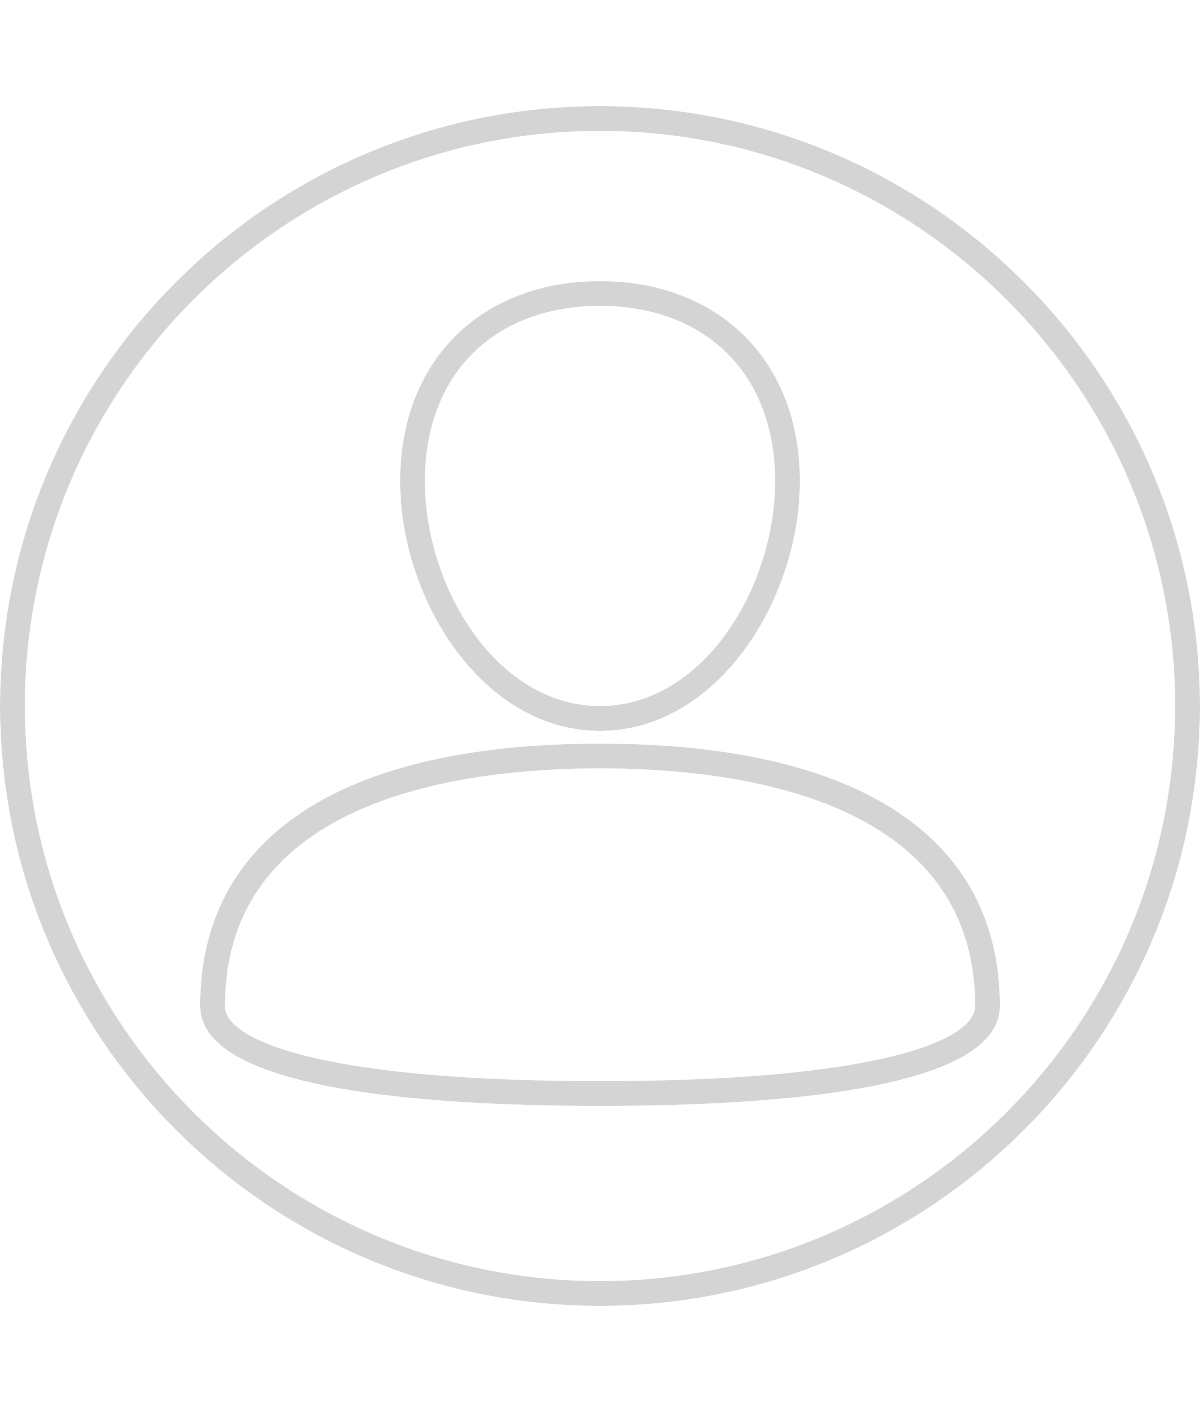 placeholder icon used in lieu of a photograph of Keith Okamura